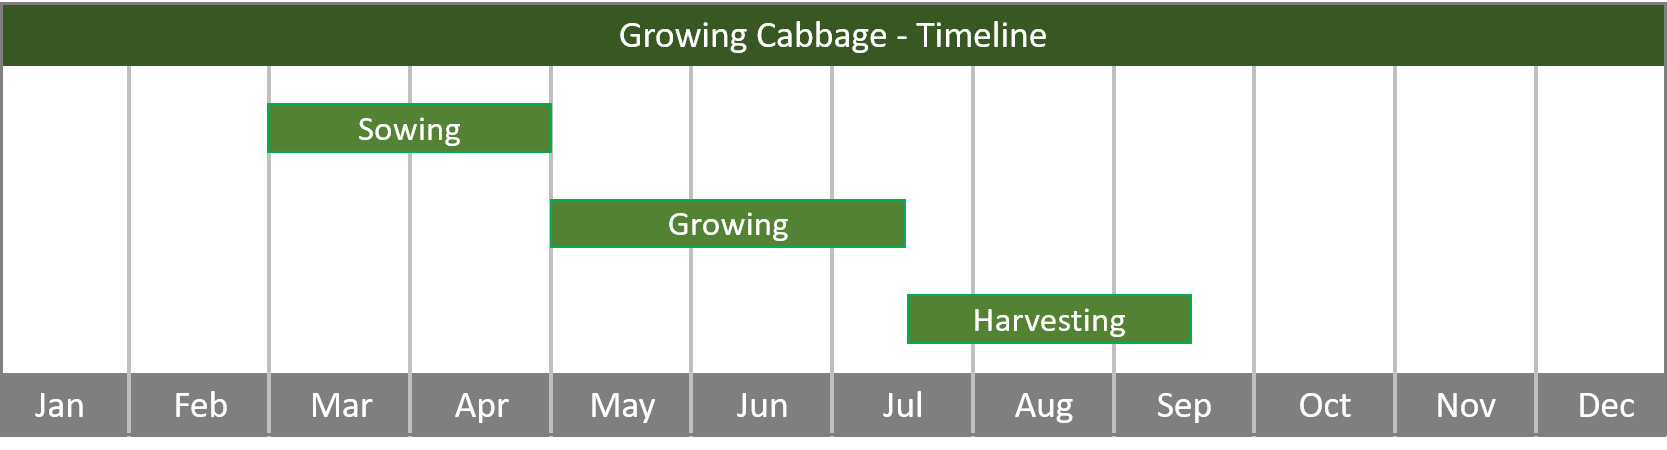 how to grow cabbage from seed to harvest at home timeline